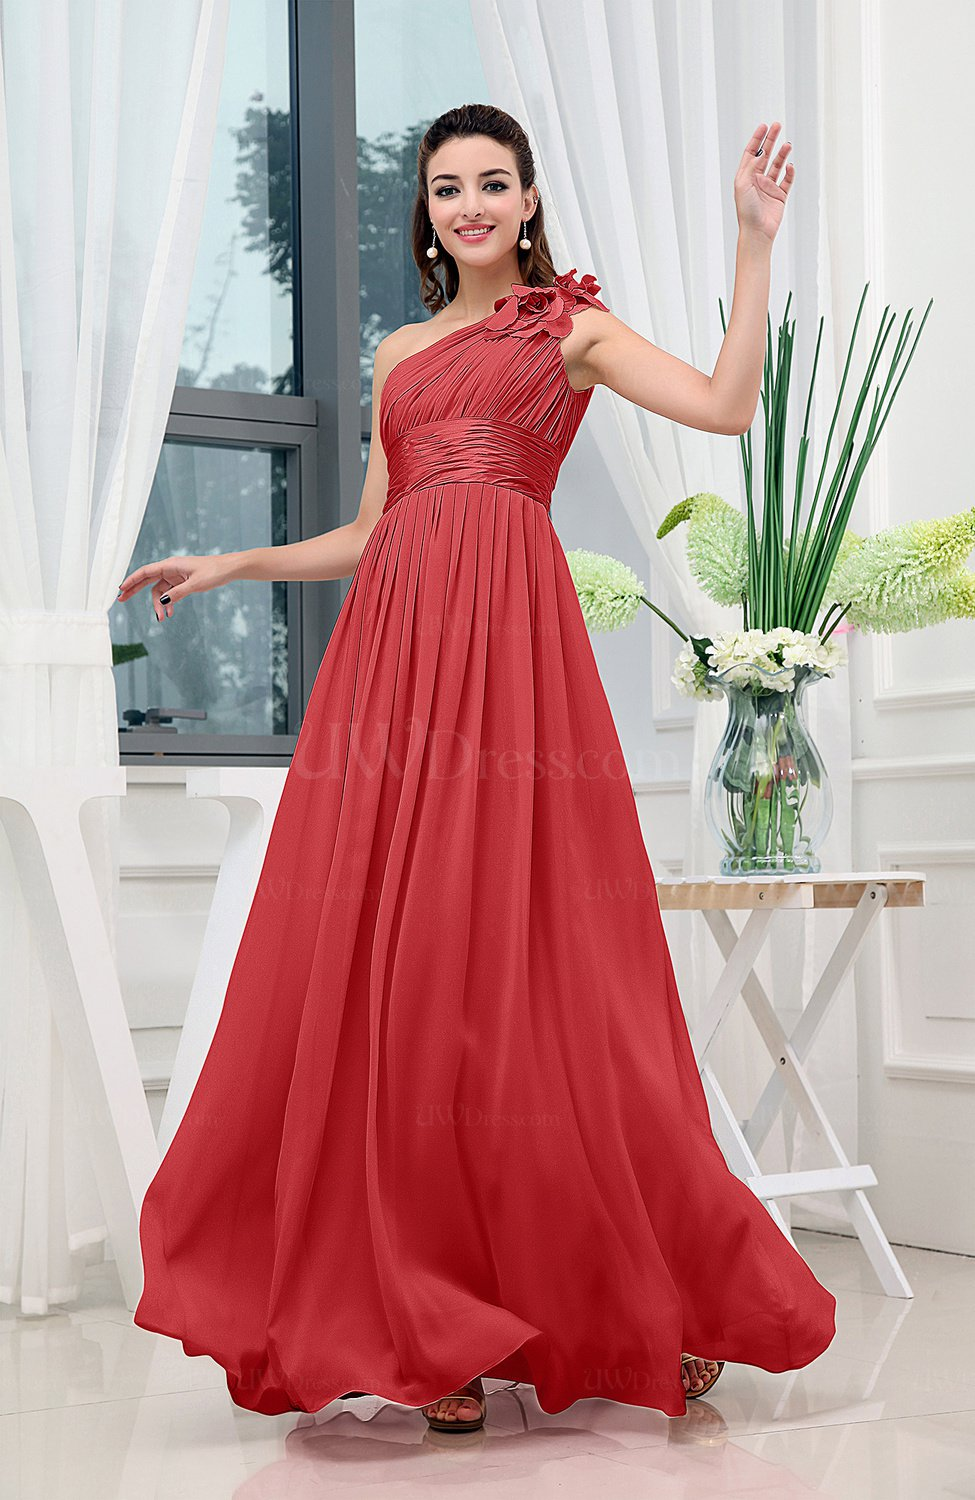 9c75f38b2c87e Red Classic A-line One Shoulder Sleeveless Zipper Sash Cocktail Dresses  (Style D26602)